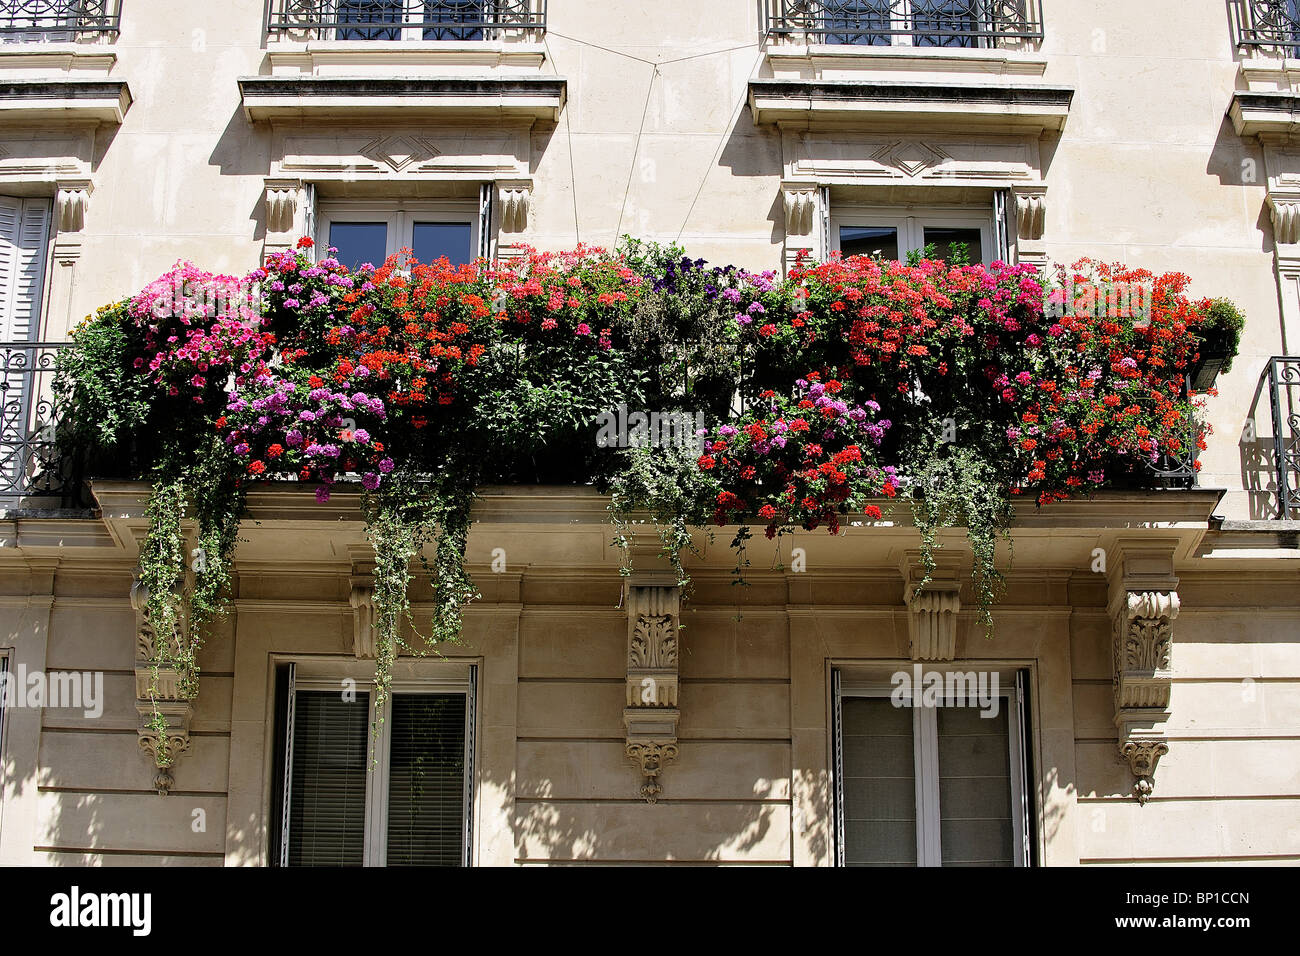 Balcon Fleuri Plein Sud France Paris Balcon Fleuri Banque D 39images Photo Stock